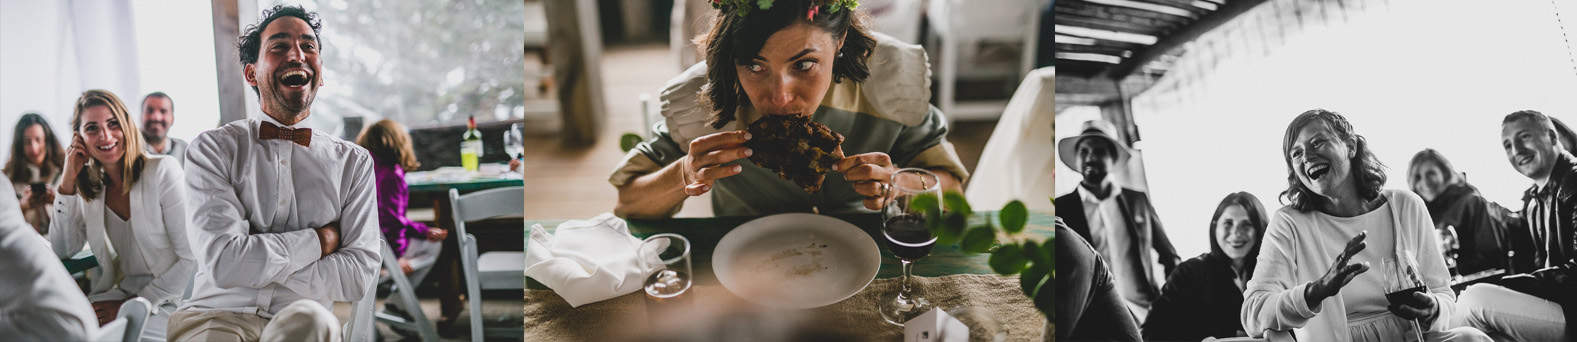 bride eating a piece of steak and people laughing